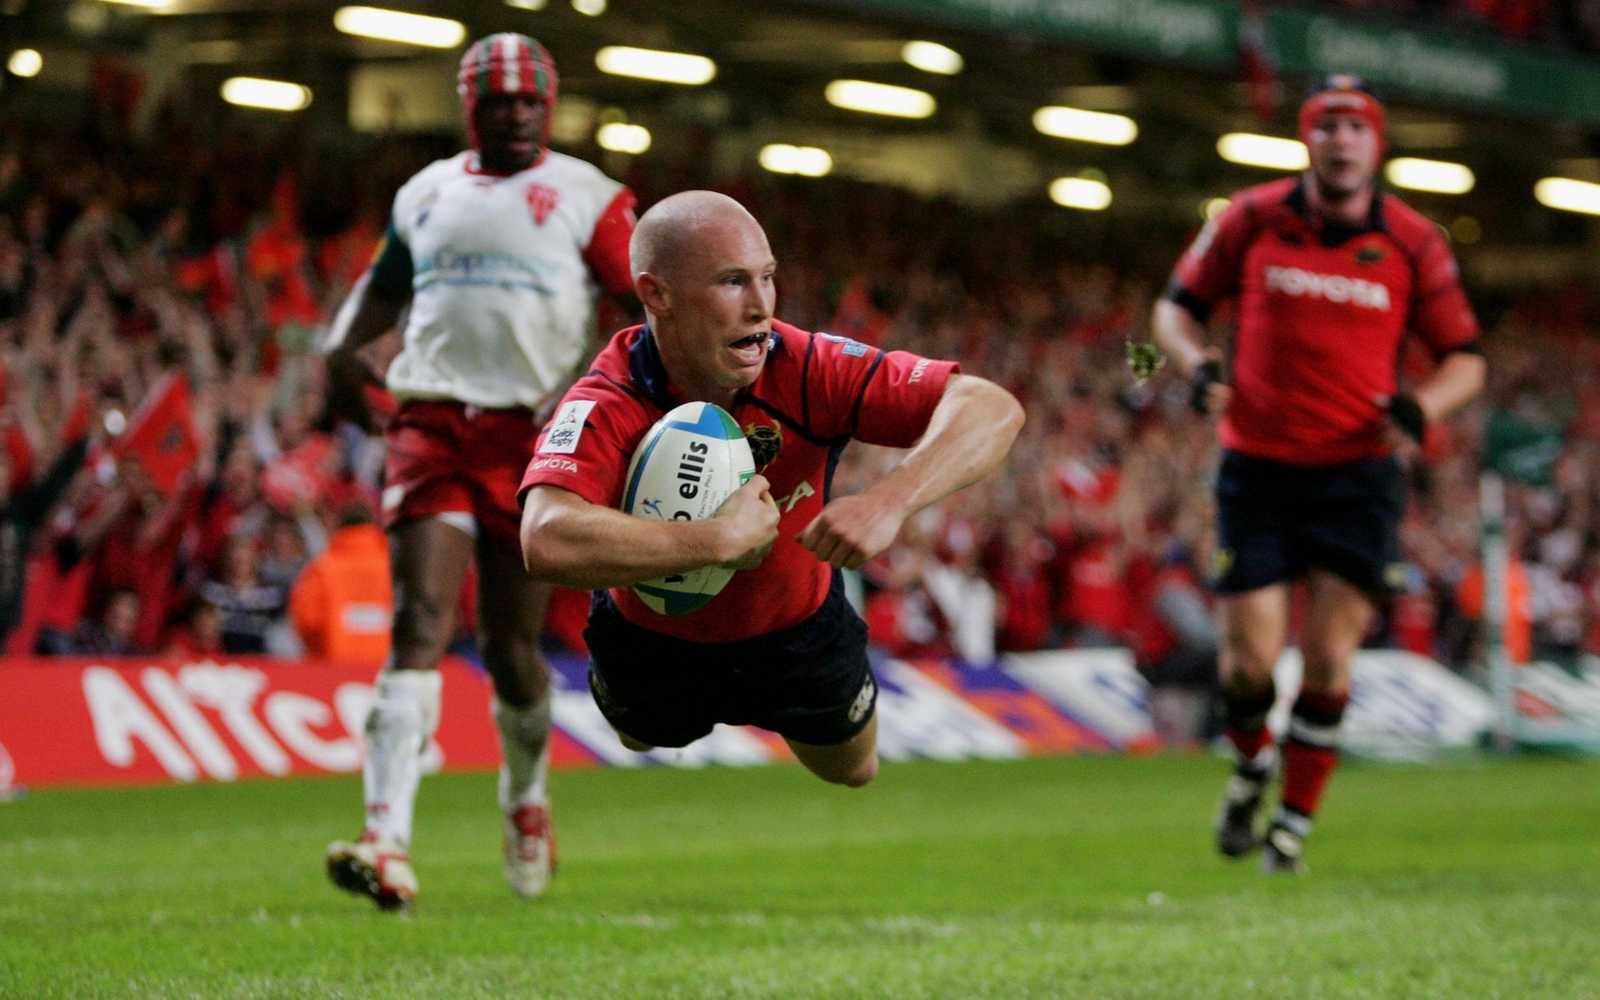 Rugby, Top 14, HCUP, Biarritz-Munster 2006